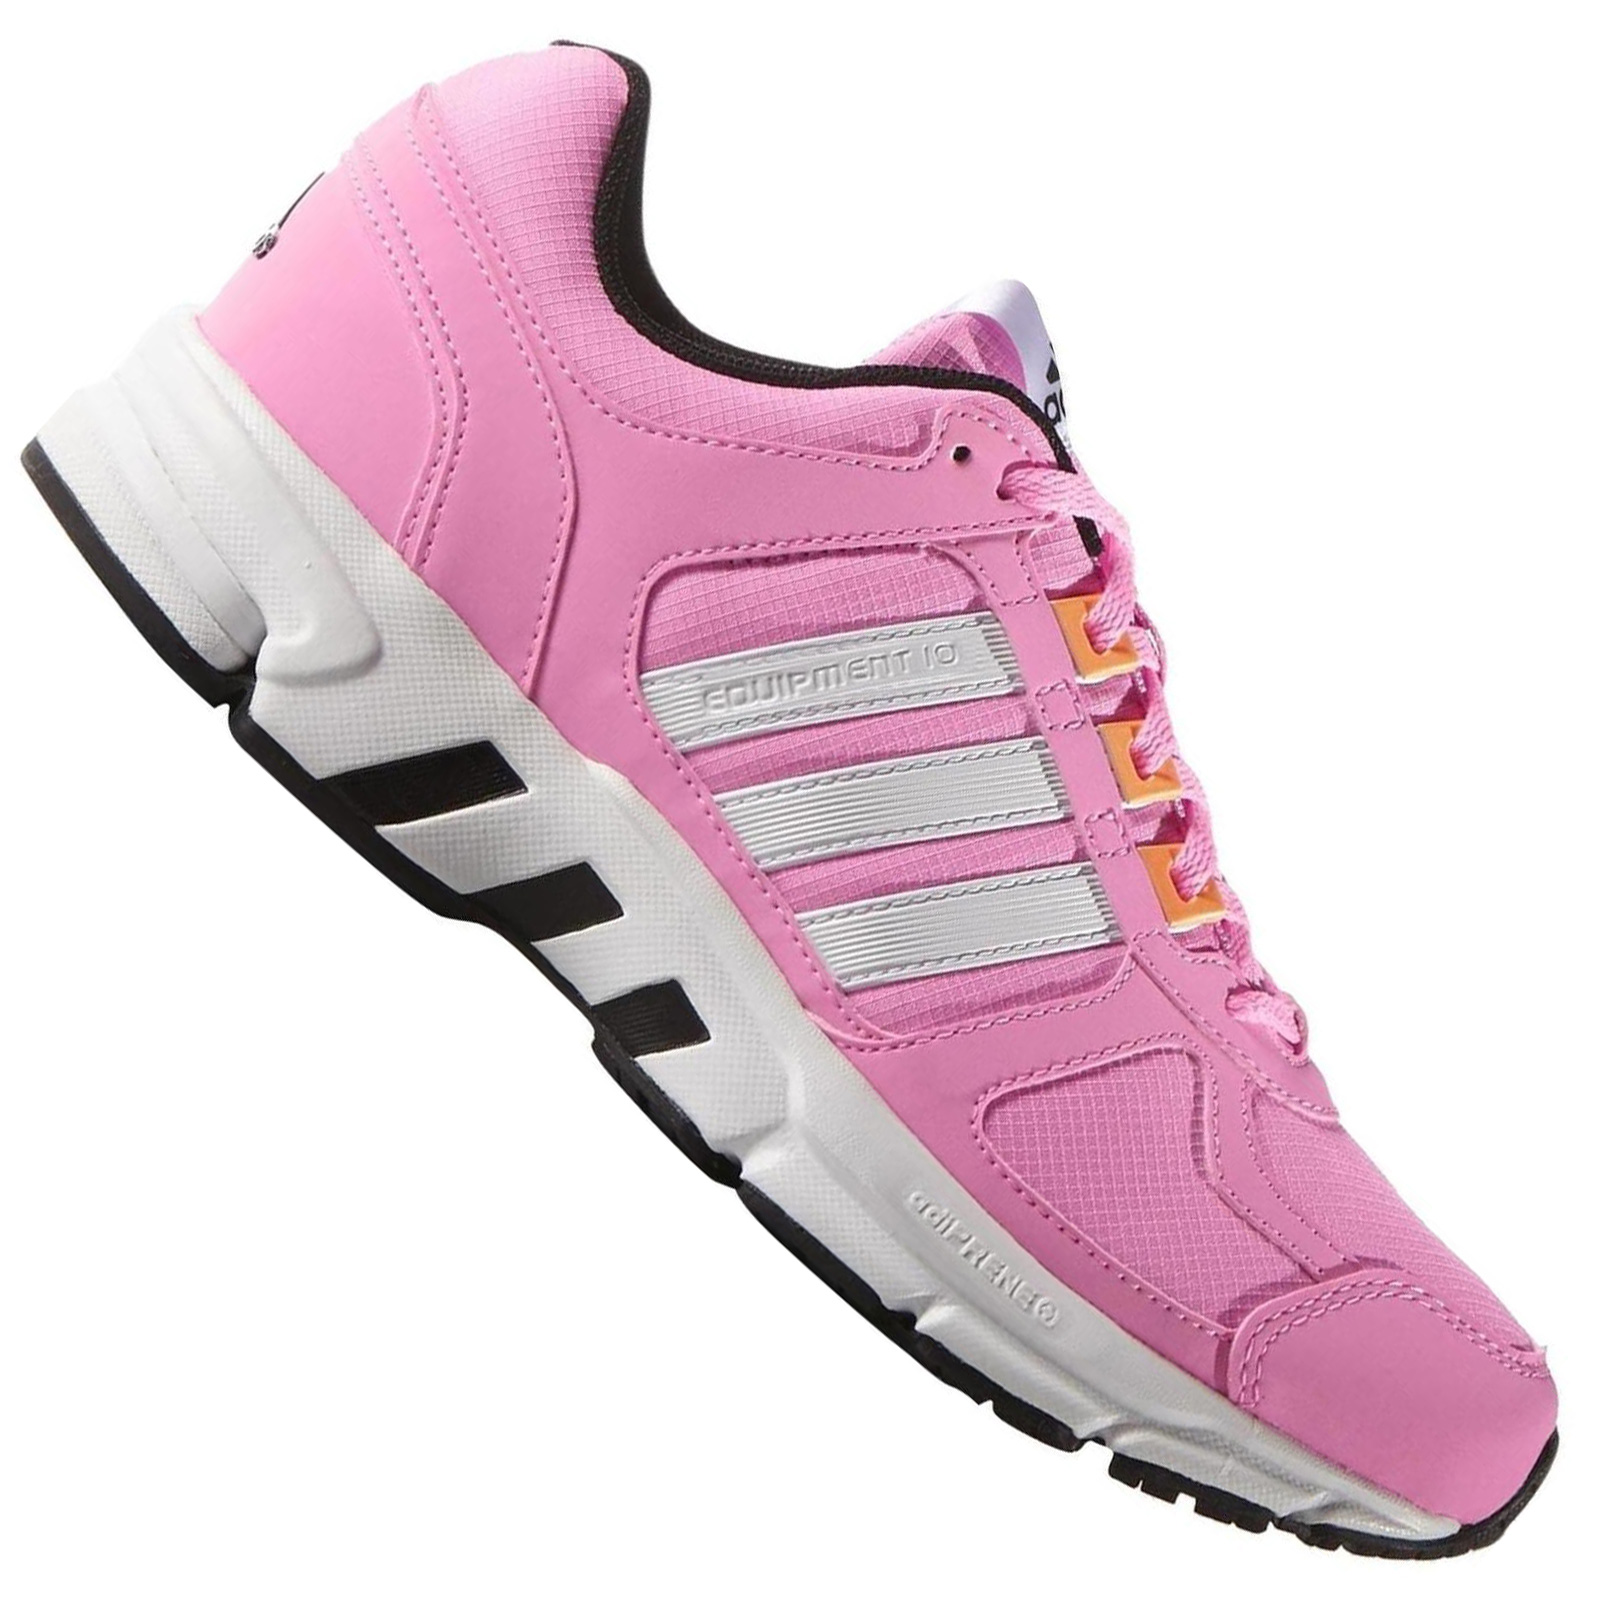 best website 7ab77 26d42 ADIDAS ORIGINALS EQT EQUIPMENT SUPPORT EQT ADV RUNNING SCHUHE LAUFSCHUHE  ROSA